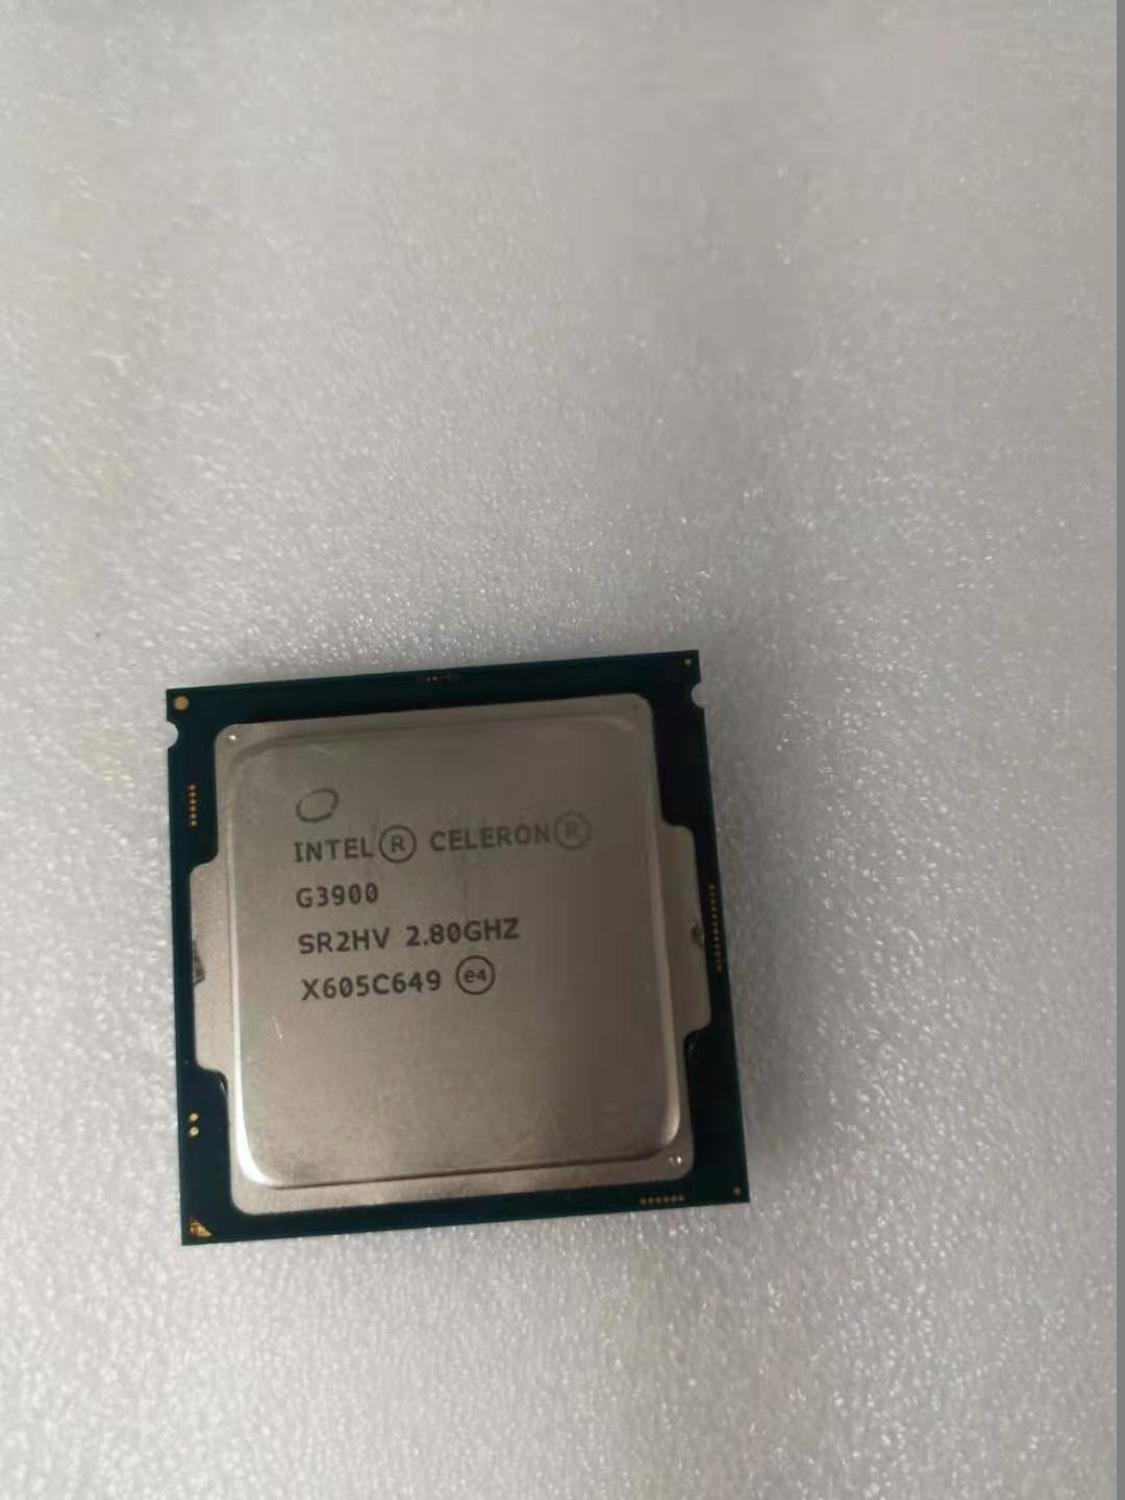 Intel Core 2 Duo G3900 Desktop Processor Dual-Core 2.8GHz 2MB Cache FSB 1600MHz LGA 1151 G 3900 Used CPU